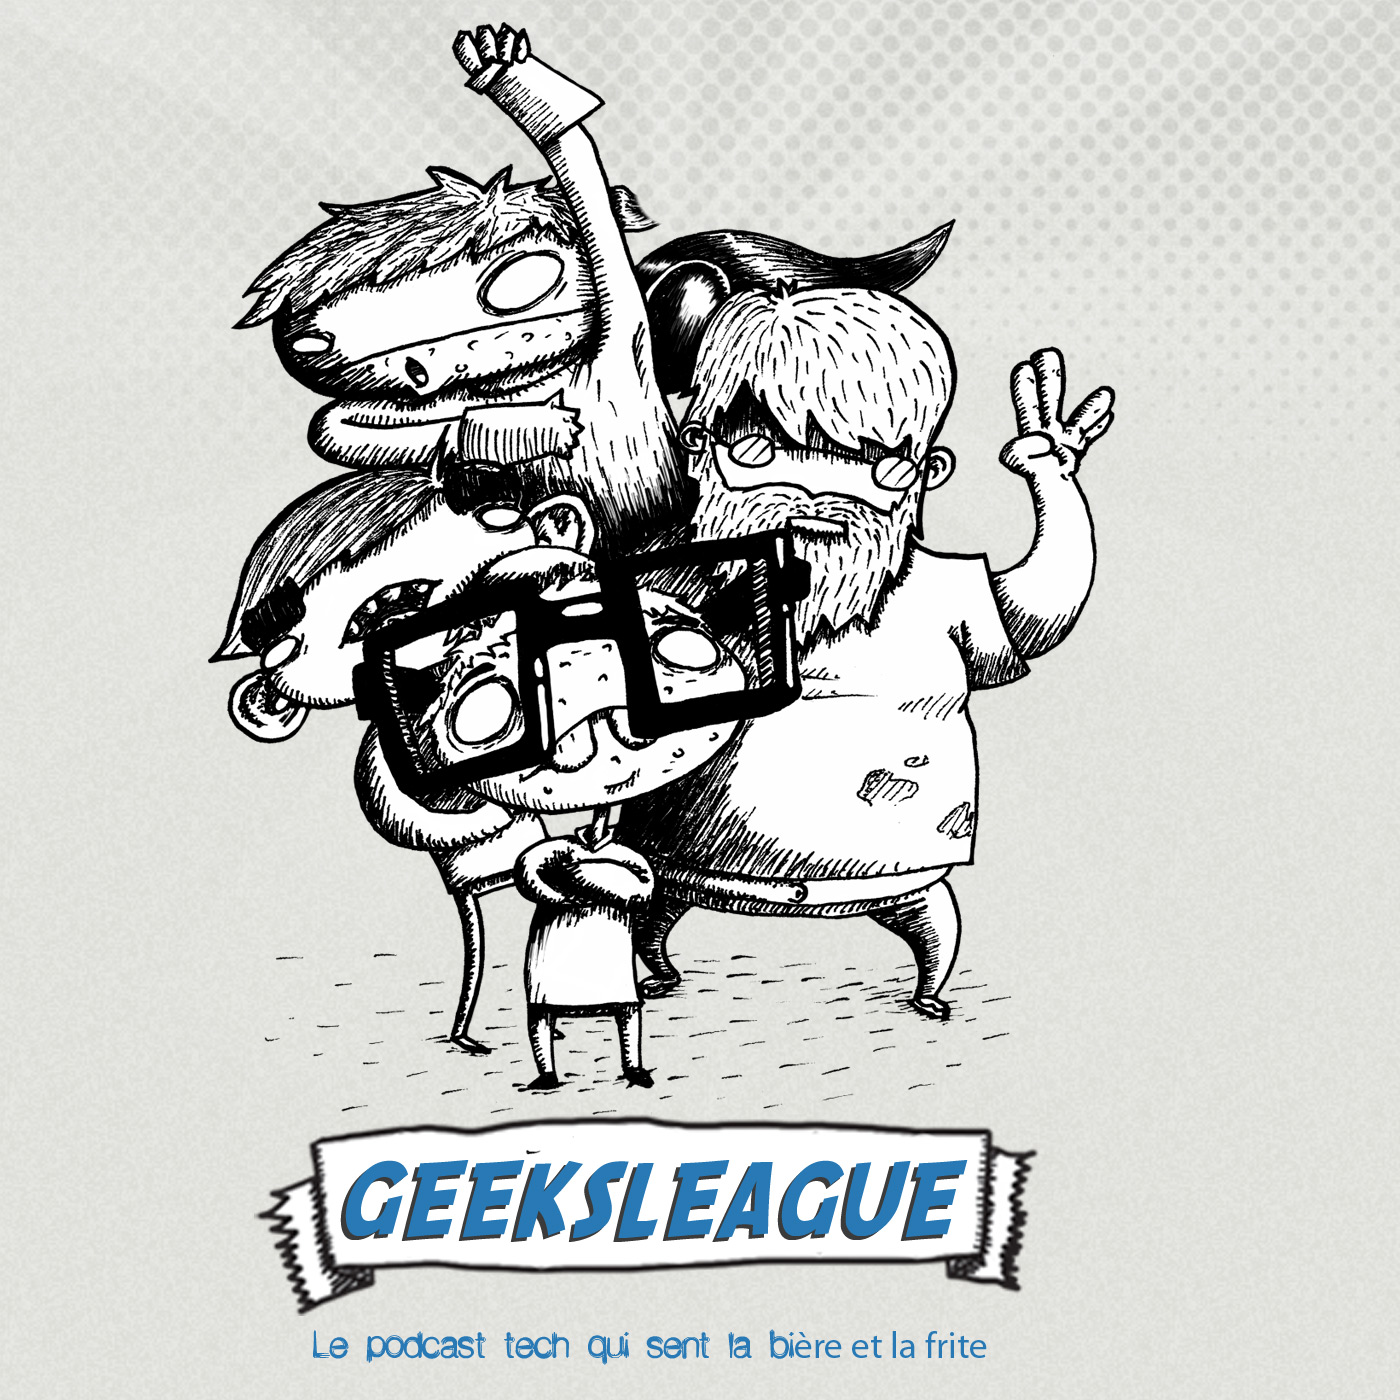 Geeksleague